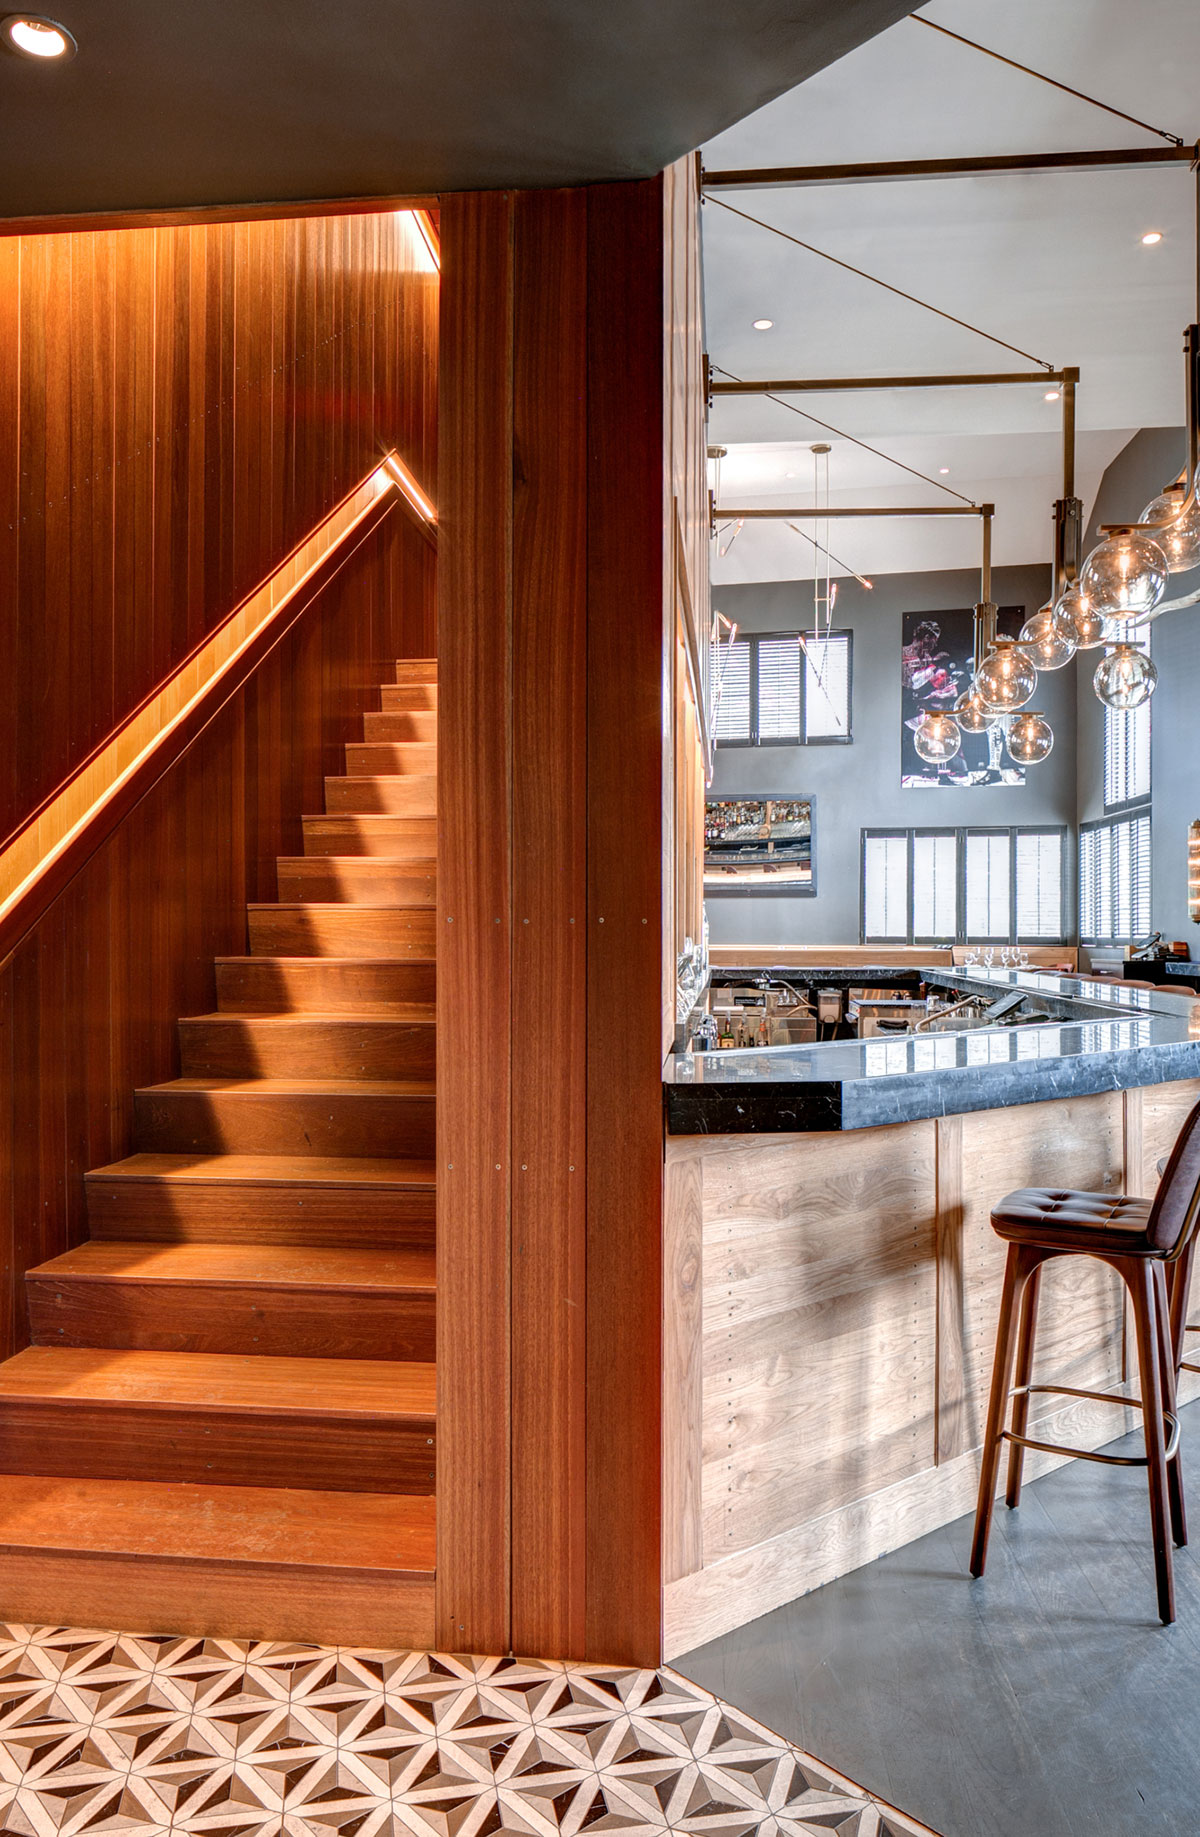 Stairs of the American Cut Bar & Grill project located at 495 Sylvan Avenue in Englewood Cliffs, New Jersey designed by the architecture studio Danny Forster & Architecture